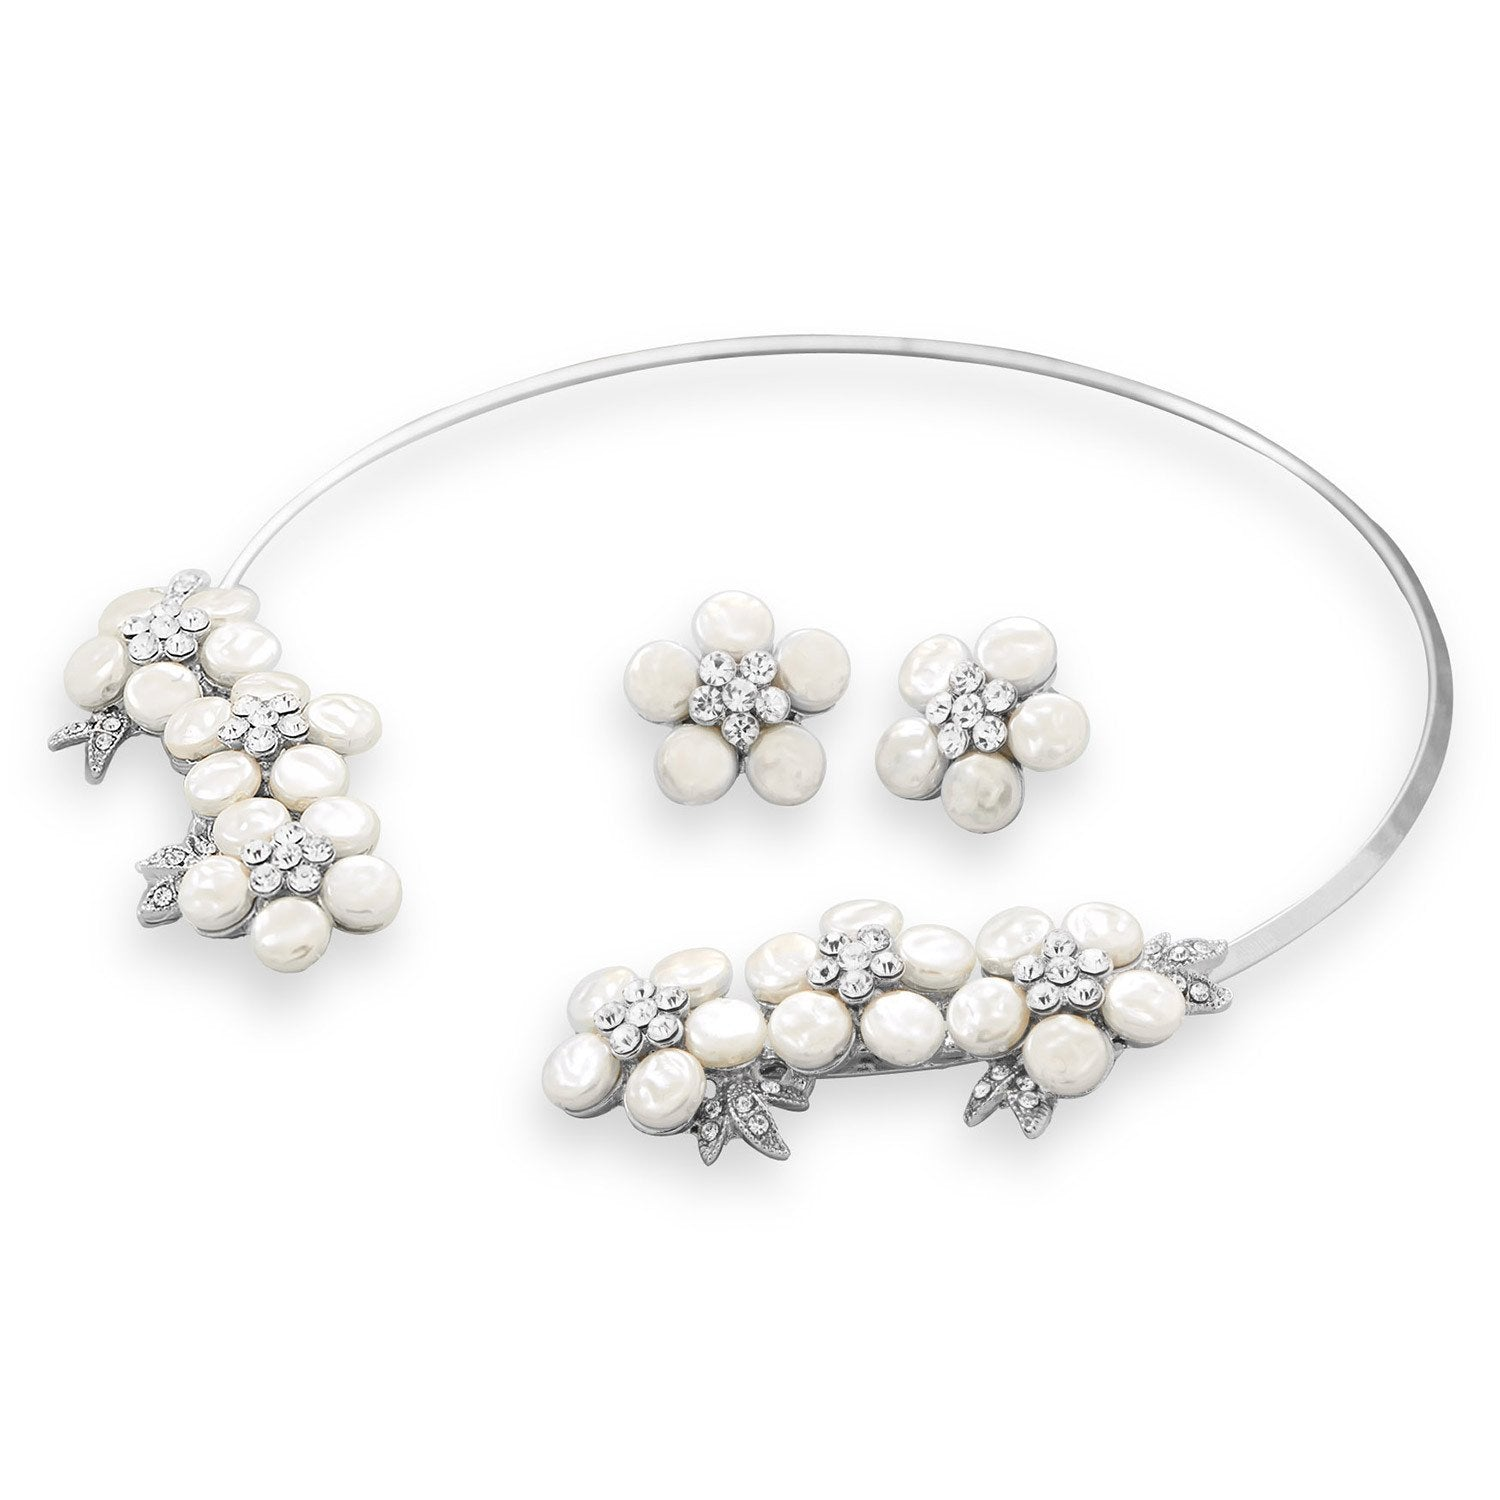 Simulated Pearl and Crystal Floral Fashion Collar and Earring Set - Rocky Mt. Outlet Inc - Shop & Save 24/7